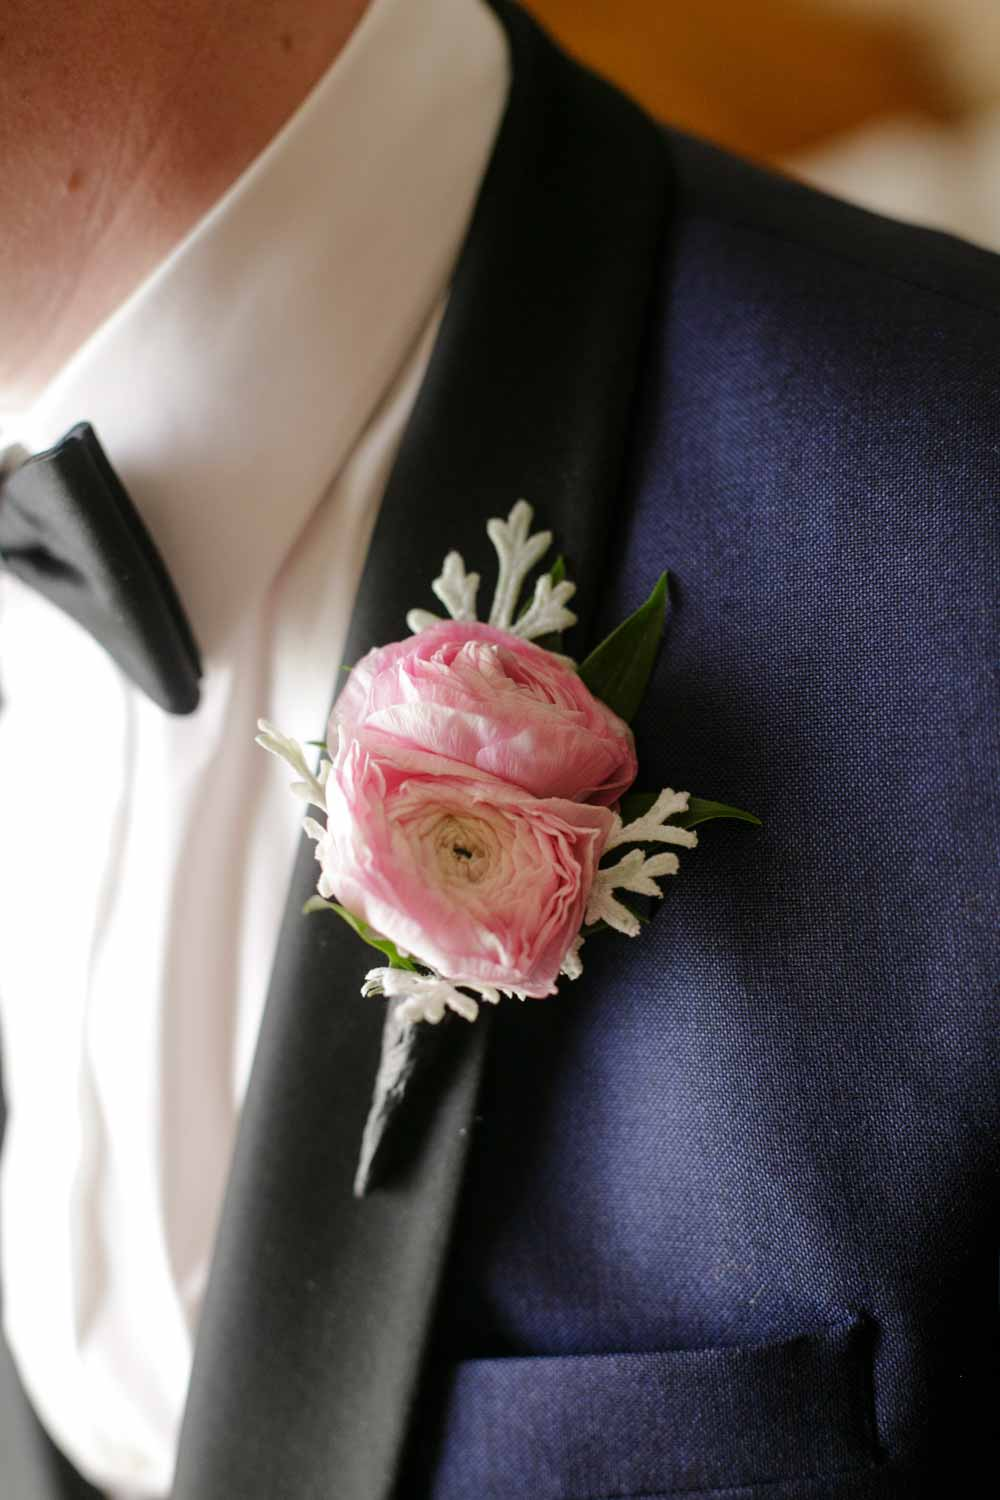 blush boutonniere on navy and black tux jacket